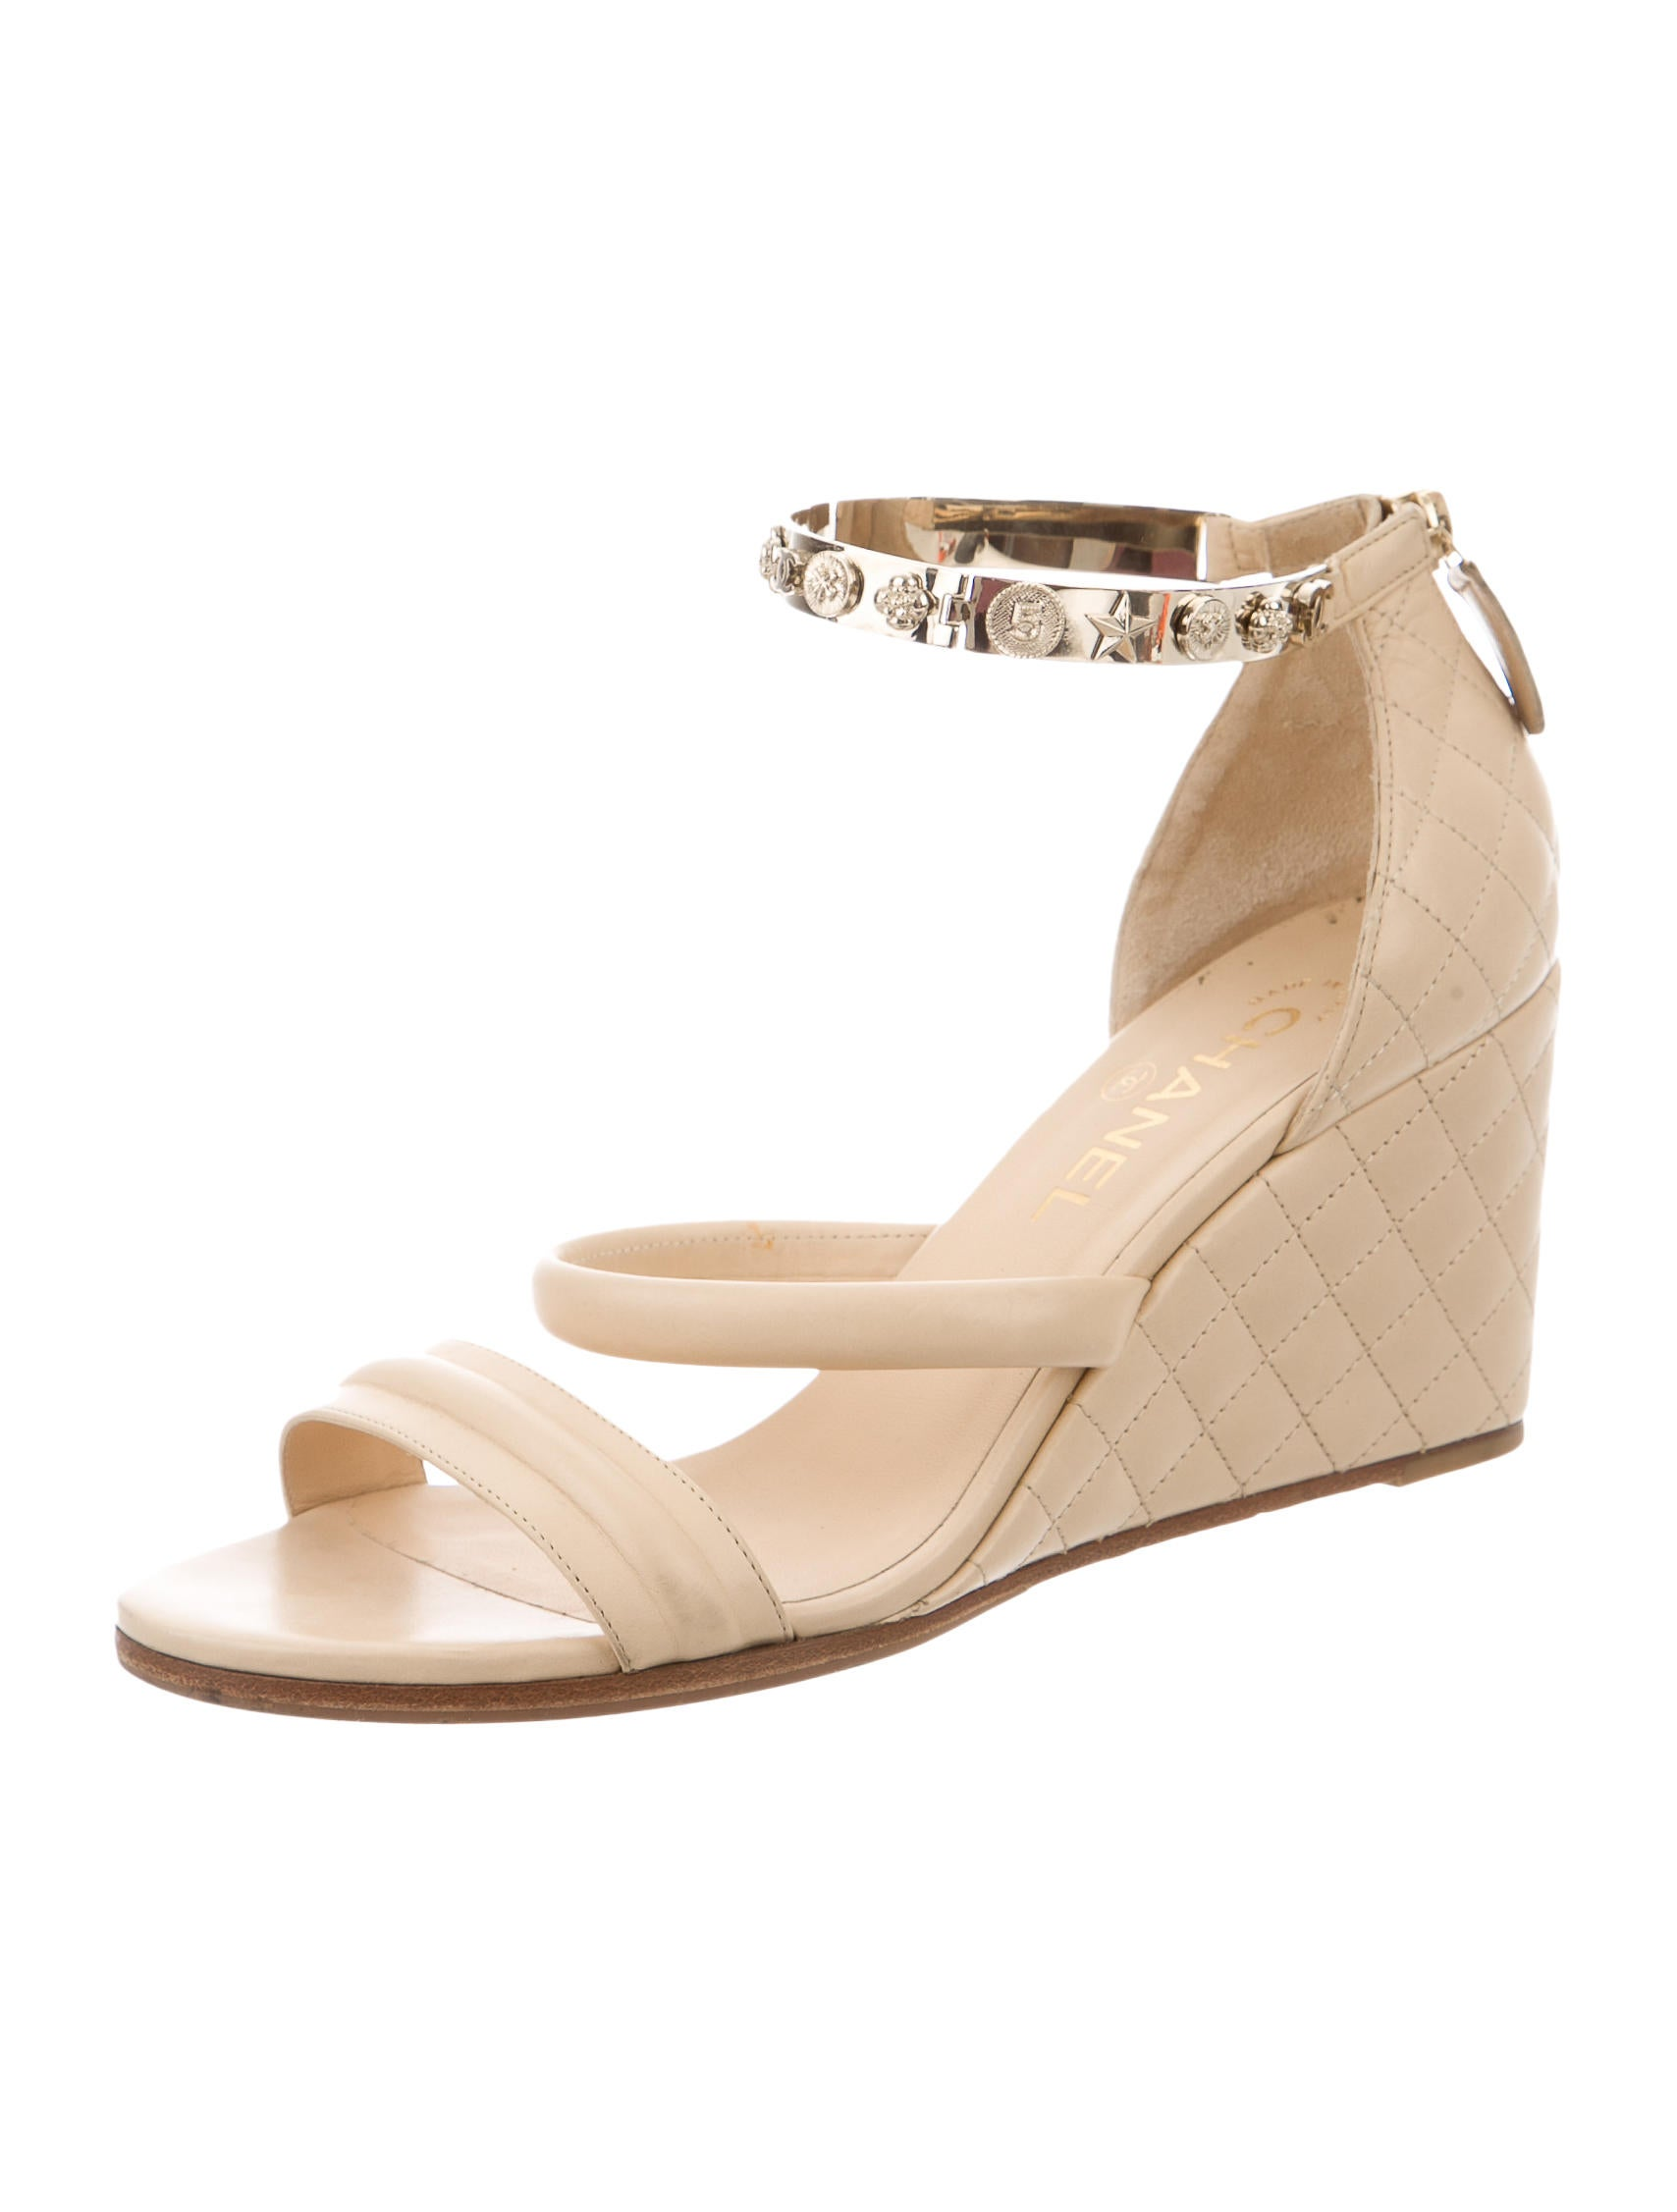 chanel dallas quilted wedges shoes cha129850